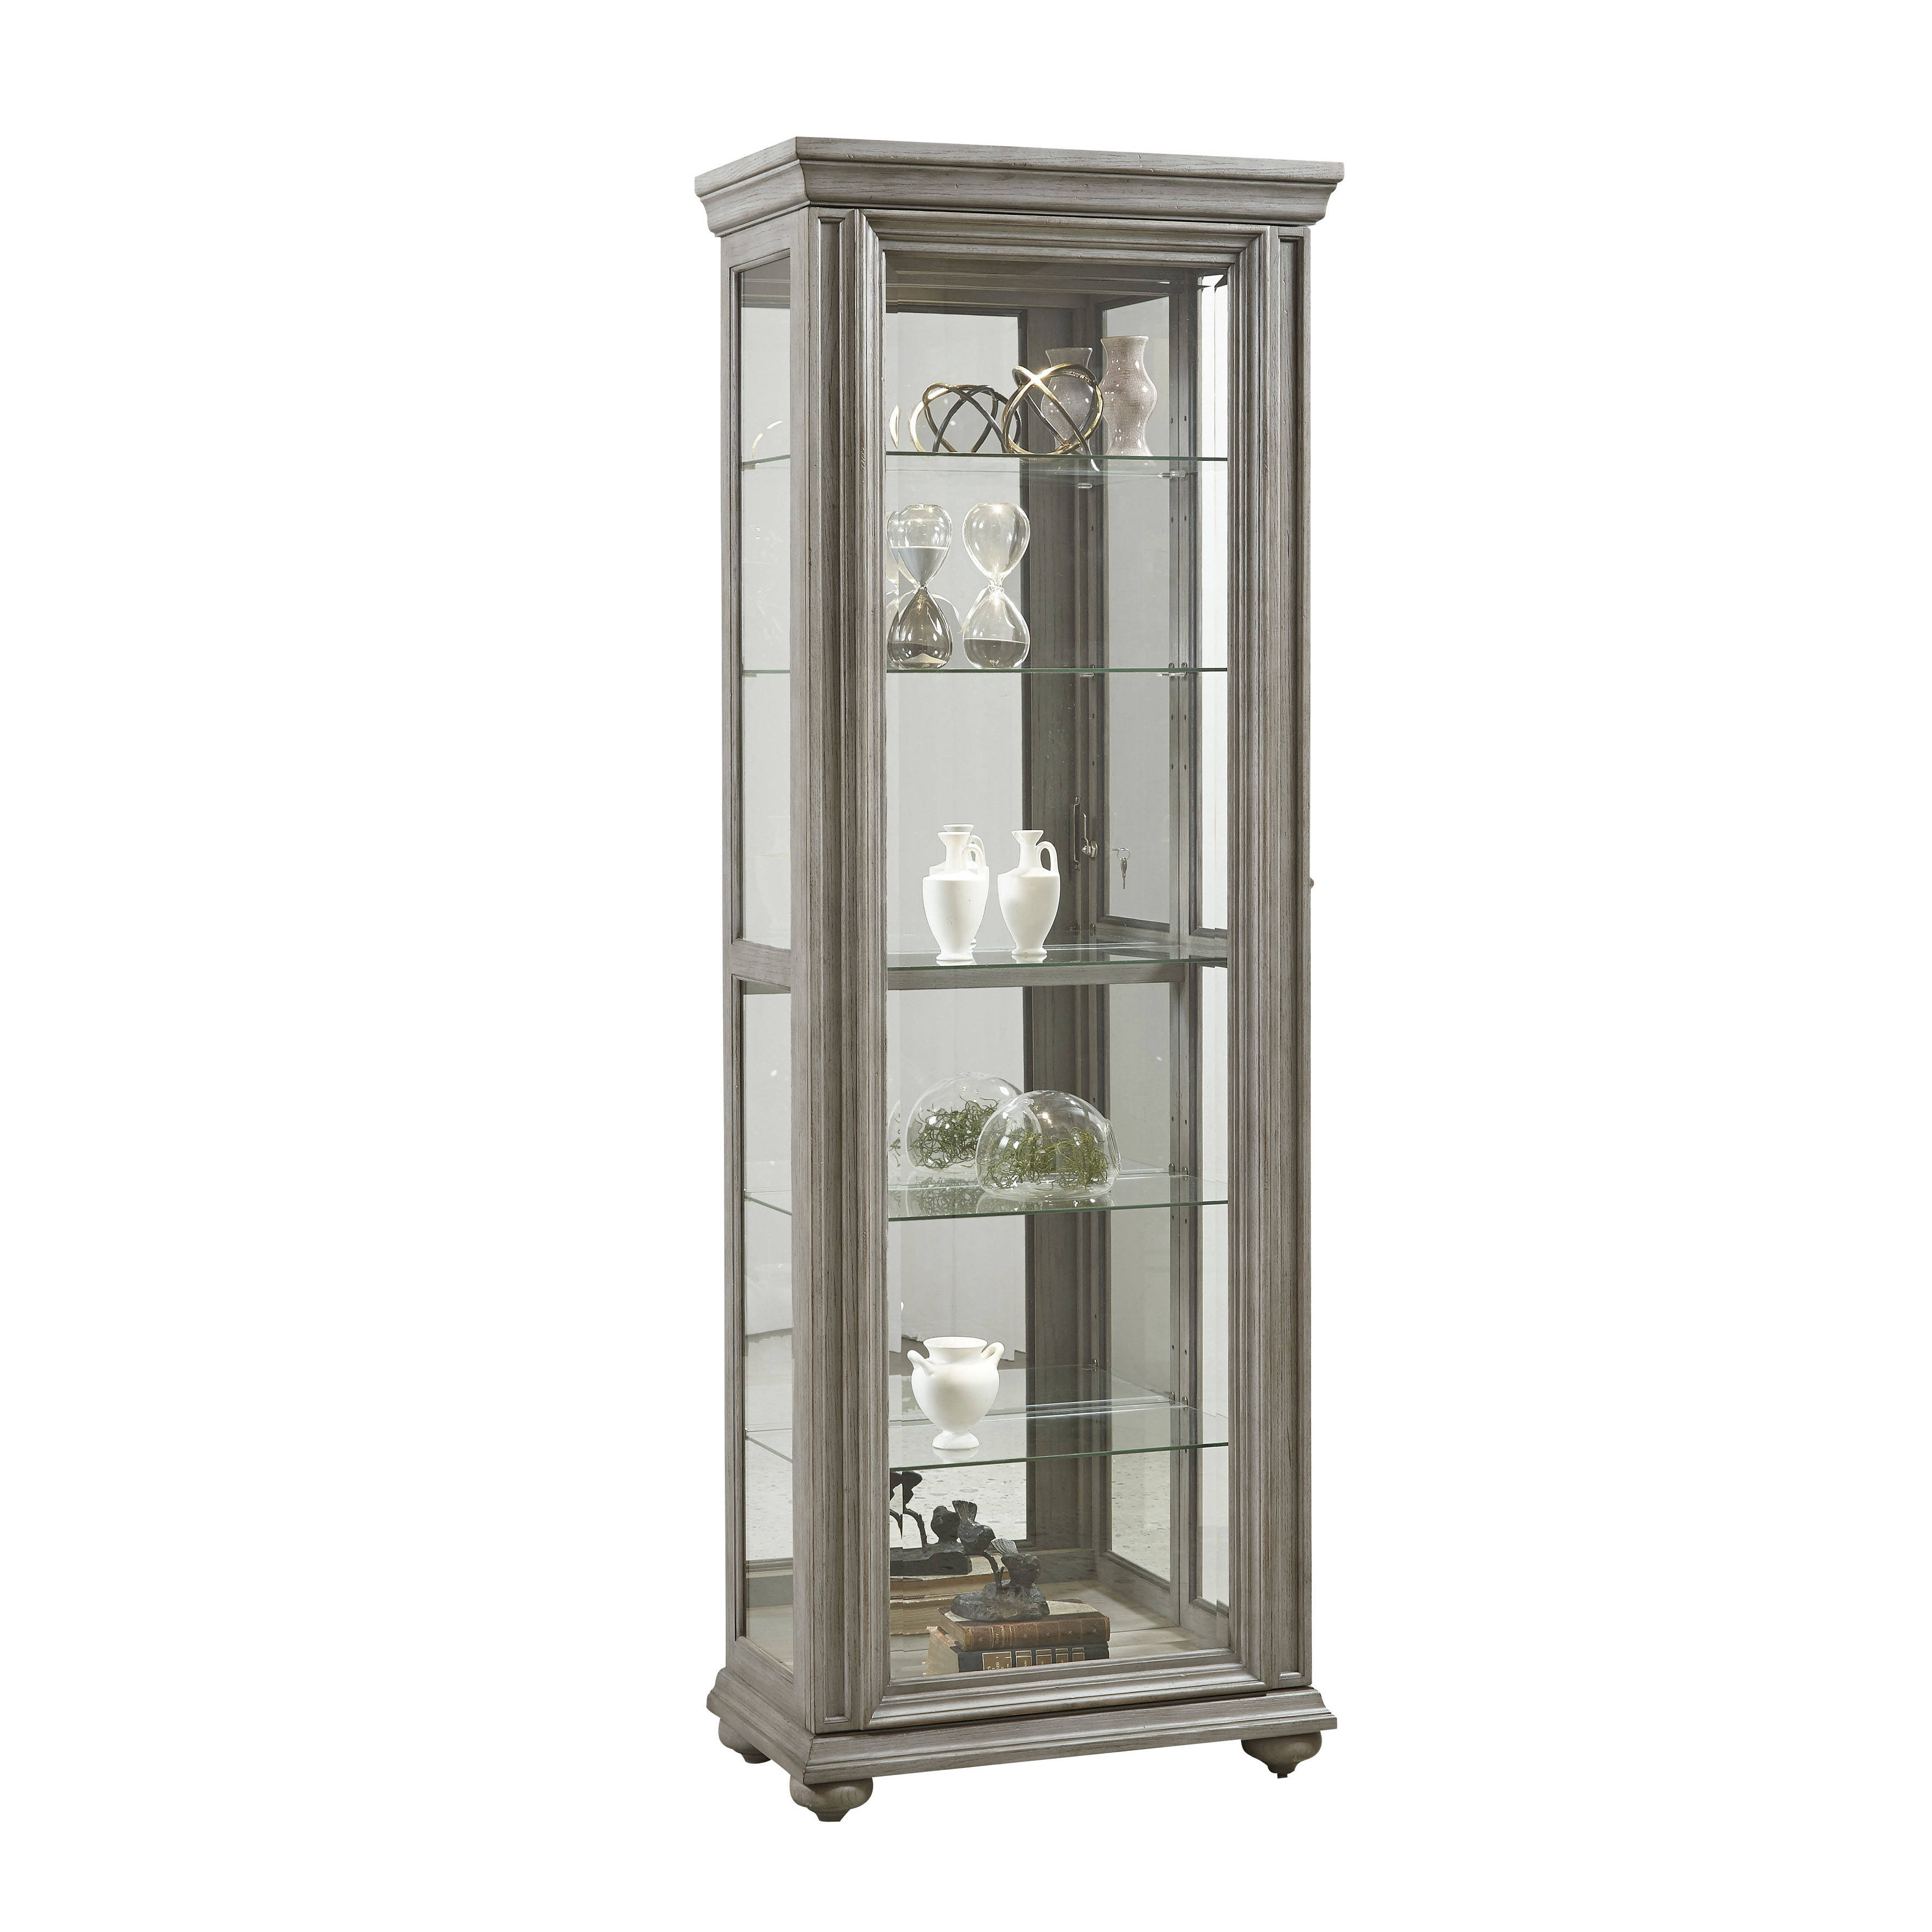 Pulaski Furniture Antique Taupe Display Cabinet The